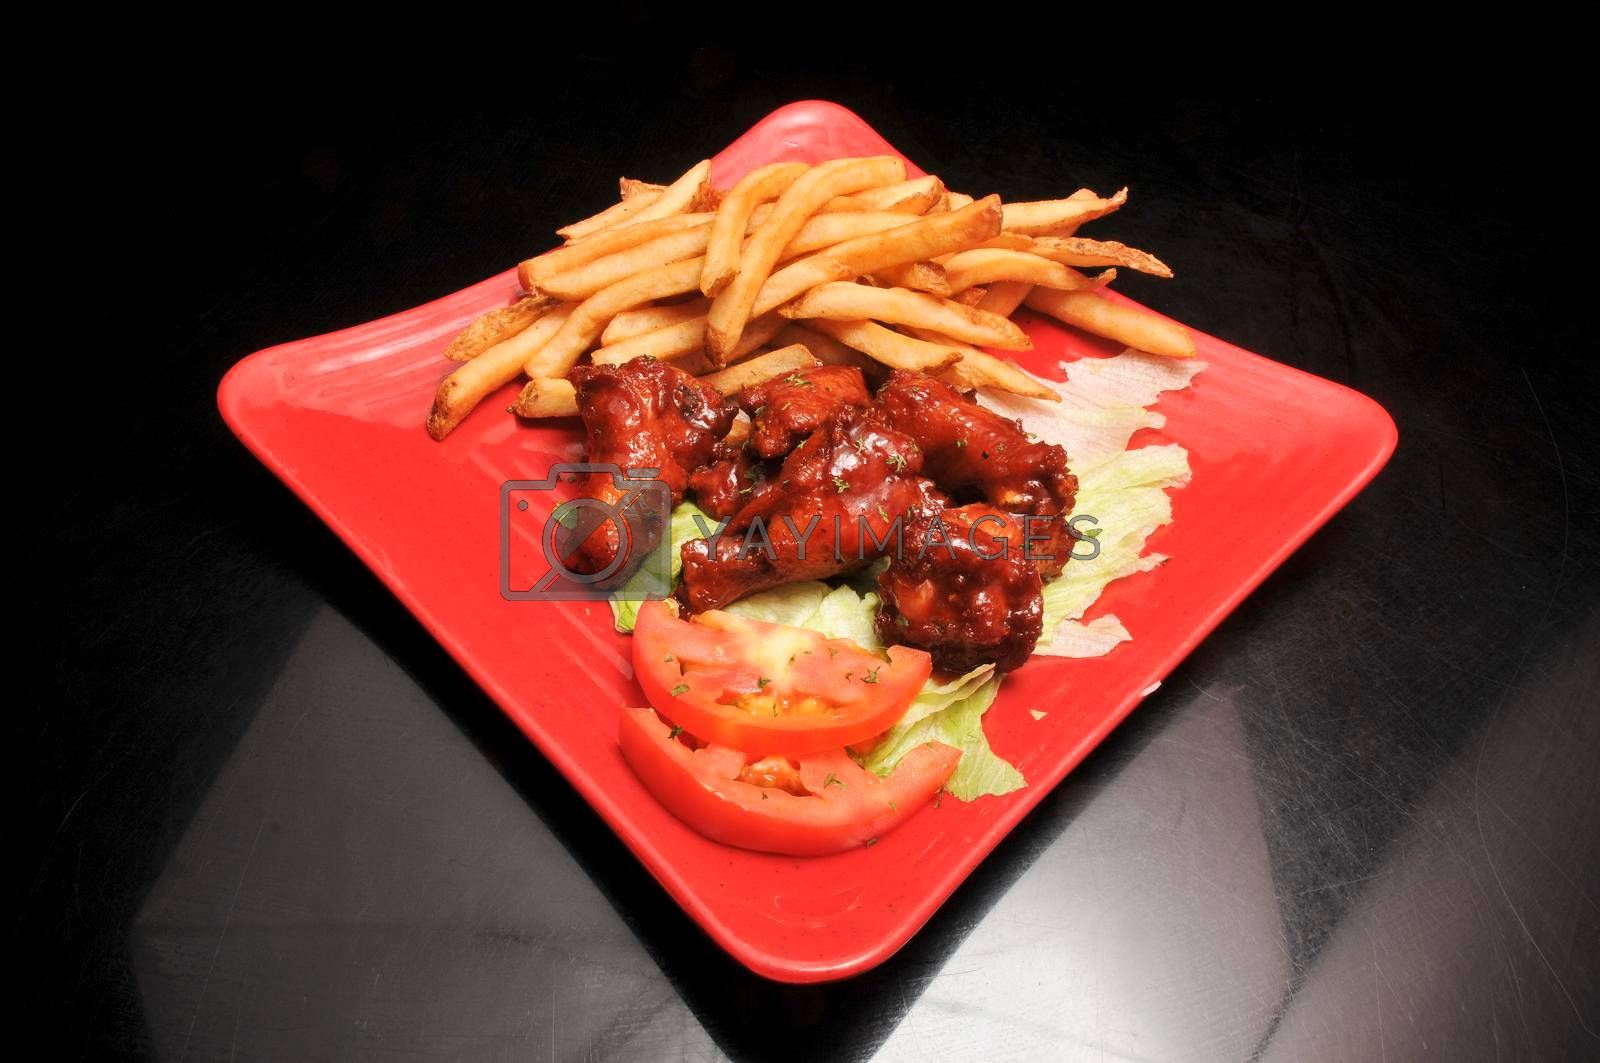 Authentic American cuisine food best known as barbeque wings